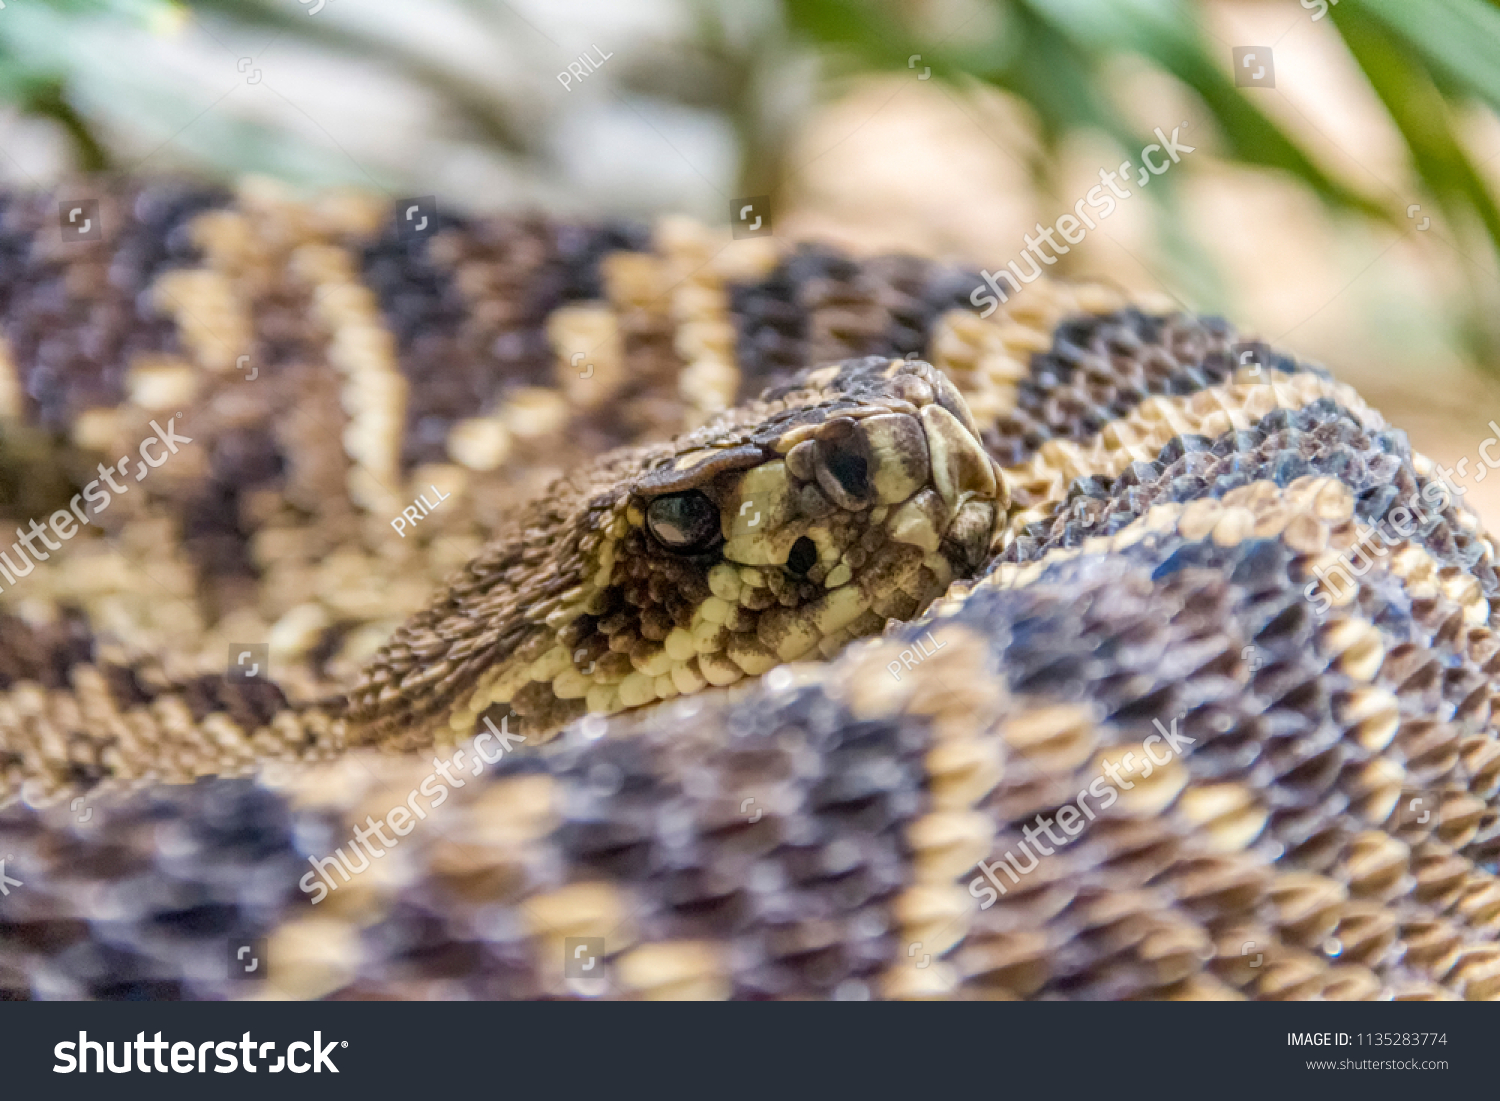 closeup shot of a Eastern diamondback rattlesnake #1135283774